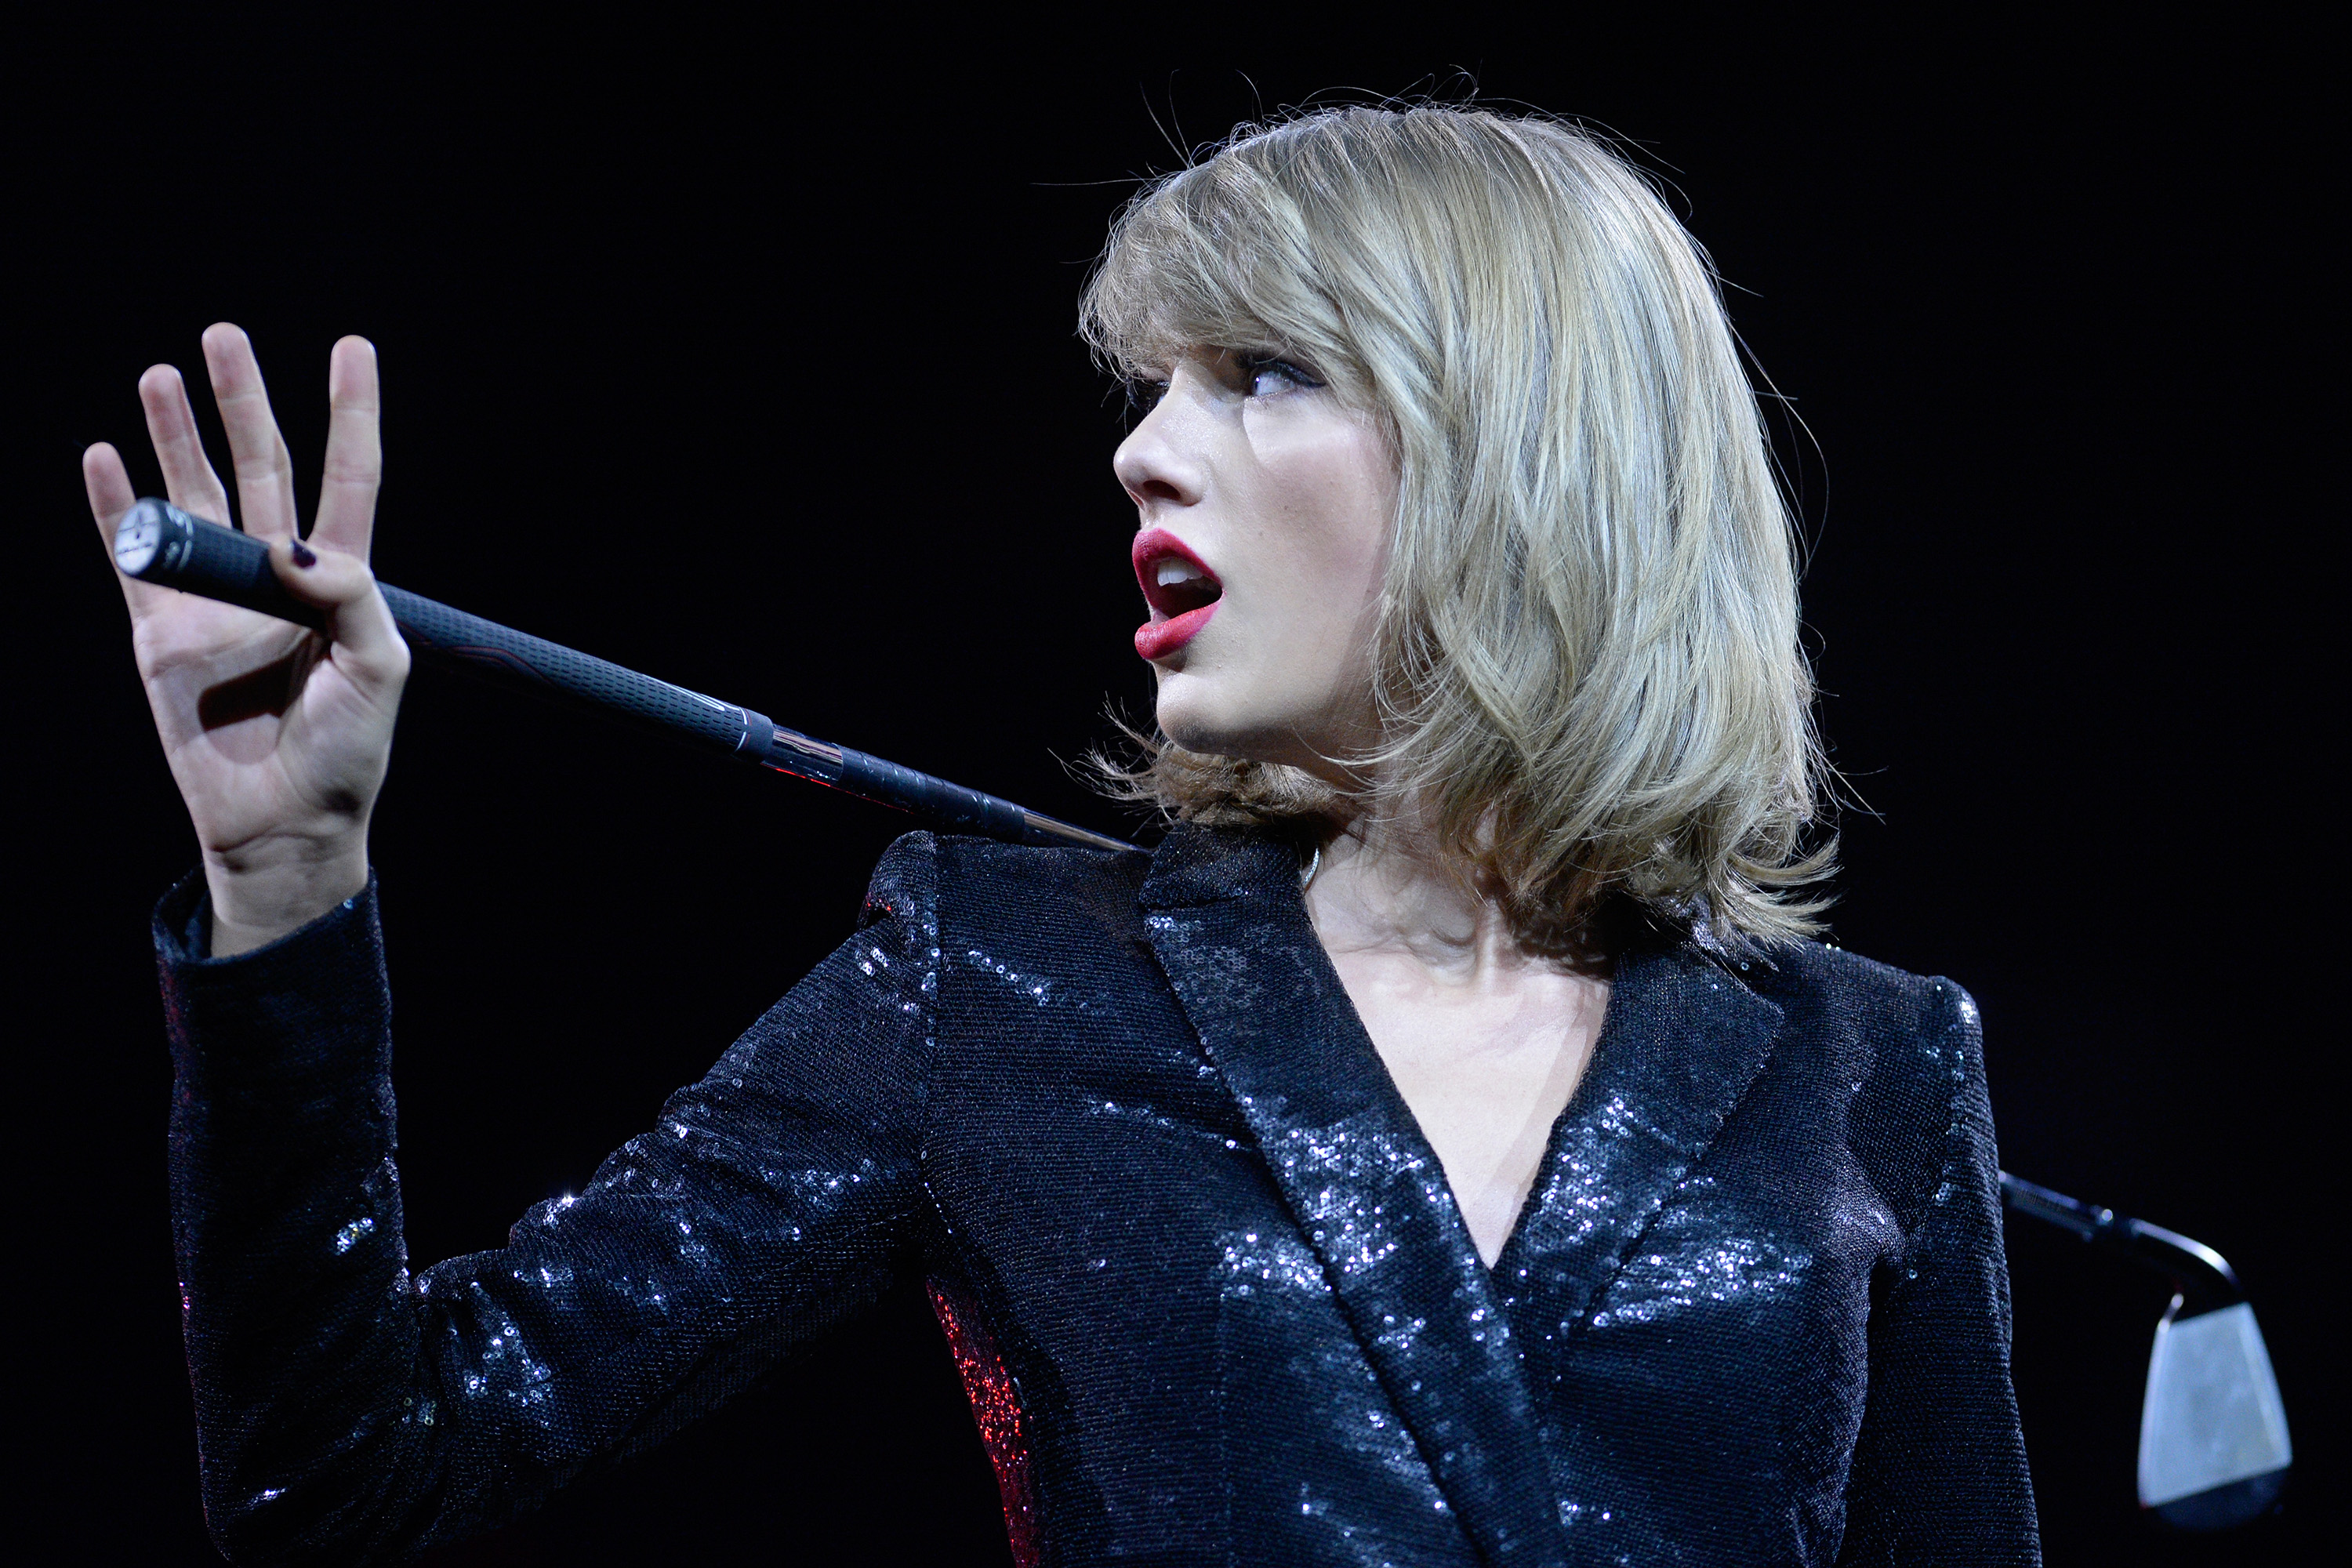 Taylor Swift Files Countersuit Against Radio Host Fired for Backstage Grope